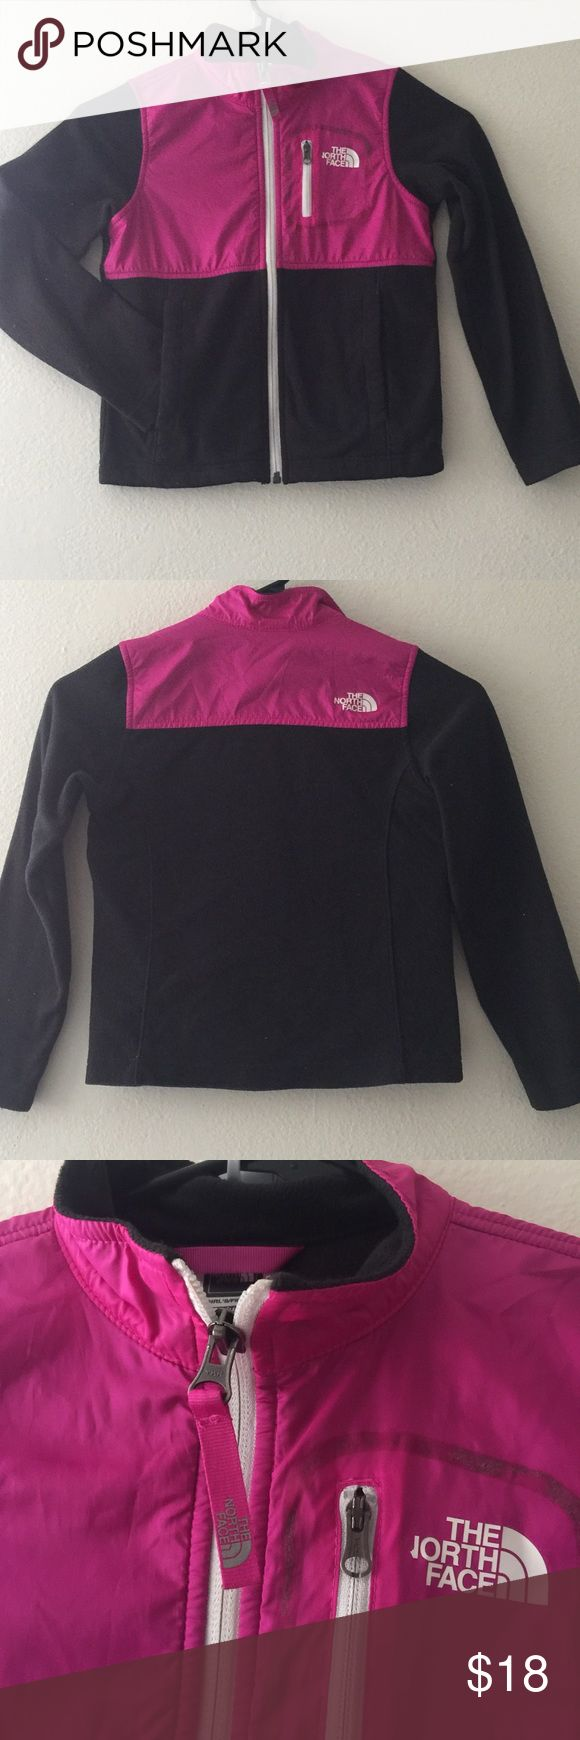 The north face girls jacket Exlt cond. The North Face Jackets & Coats